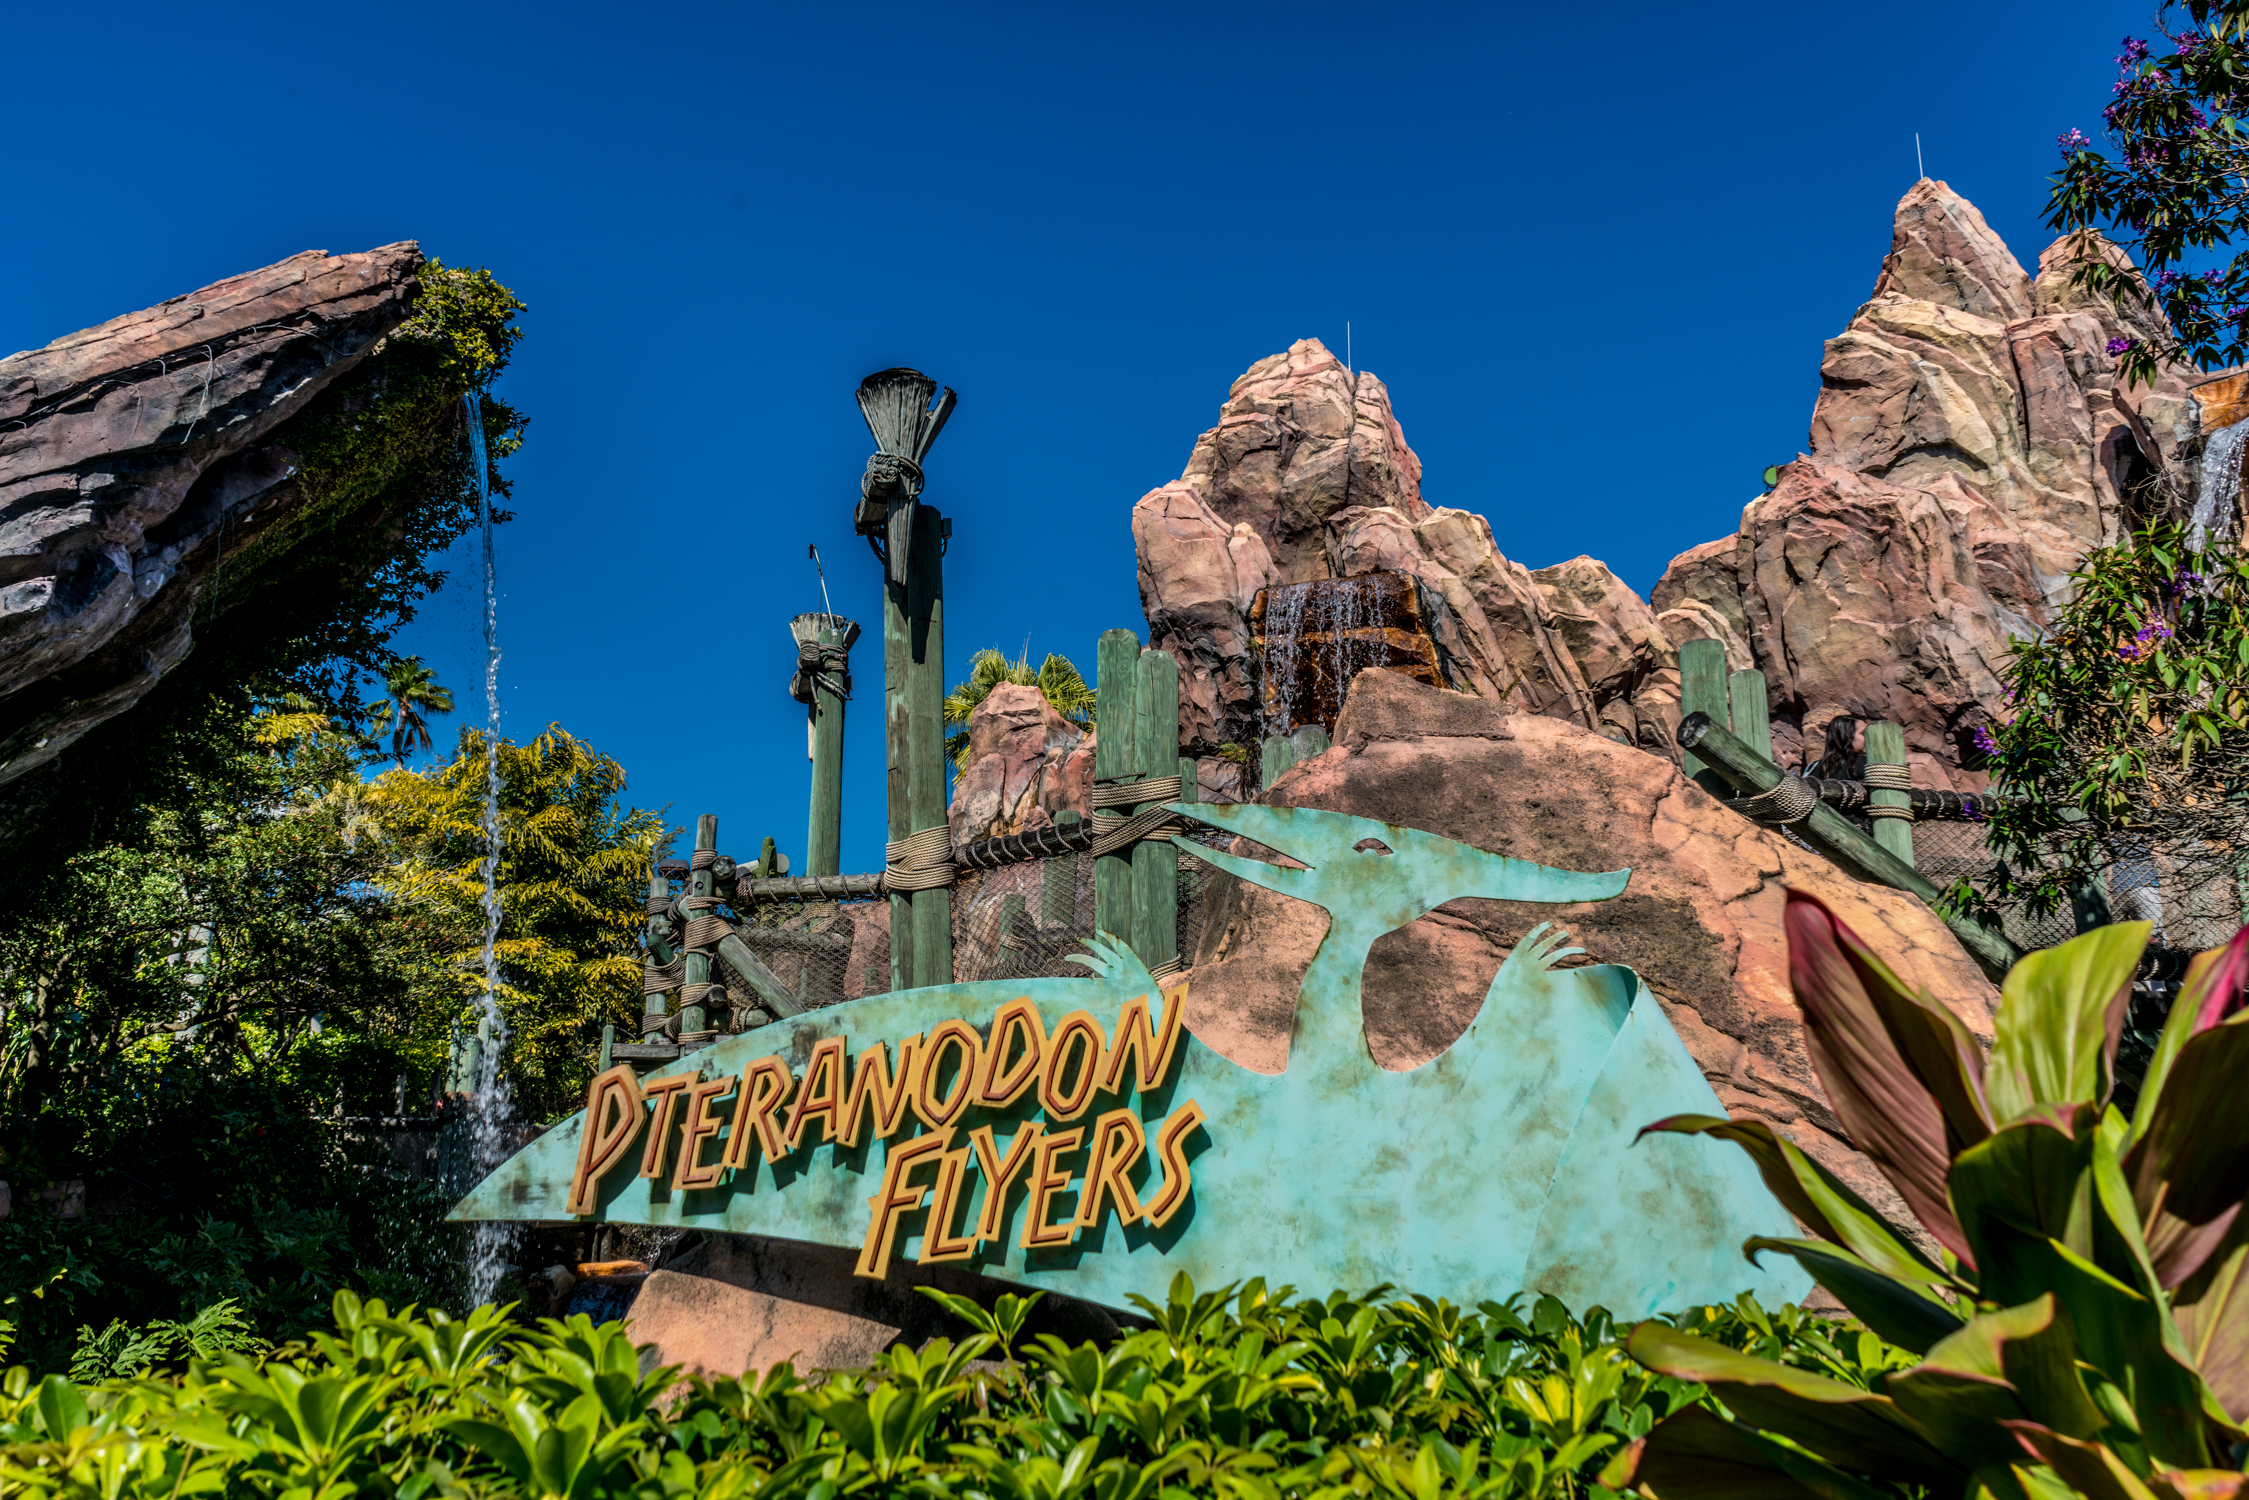 The entrance to Pteranodon Flyers at Islands of Adventure is located inside Camp Jurassic